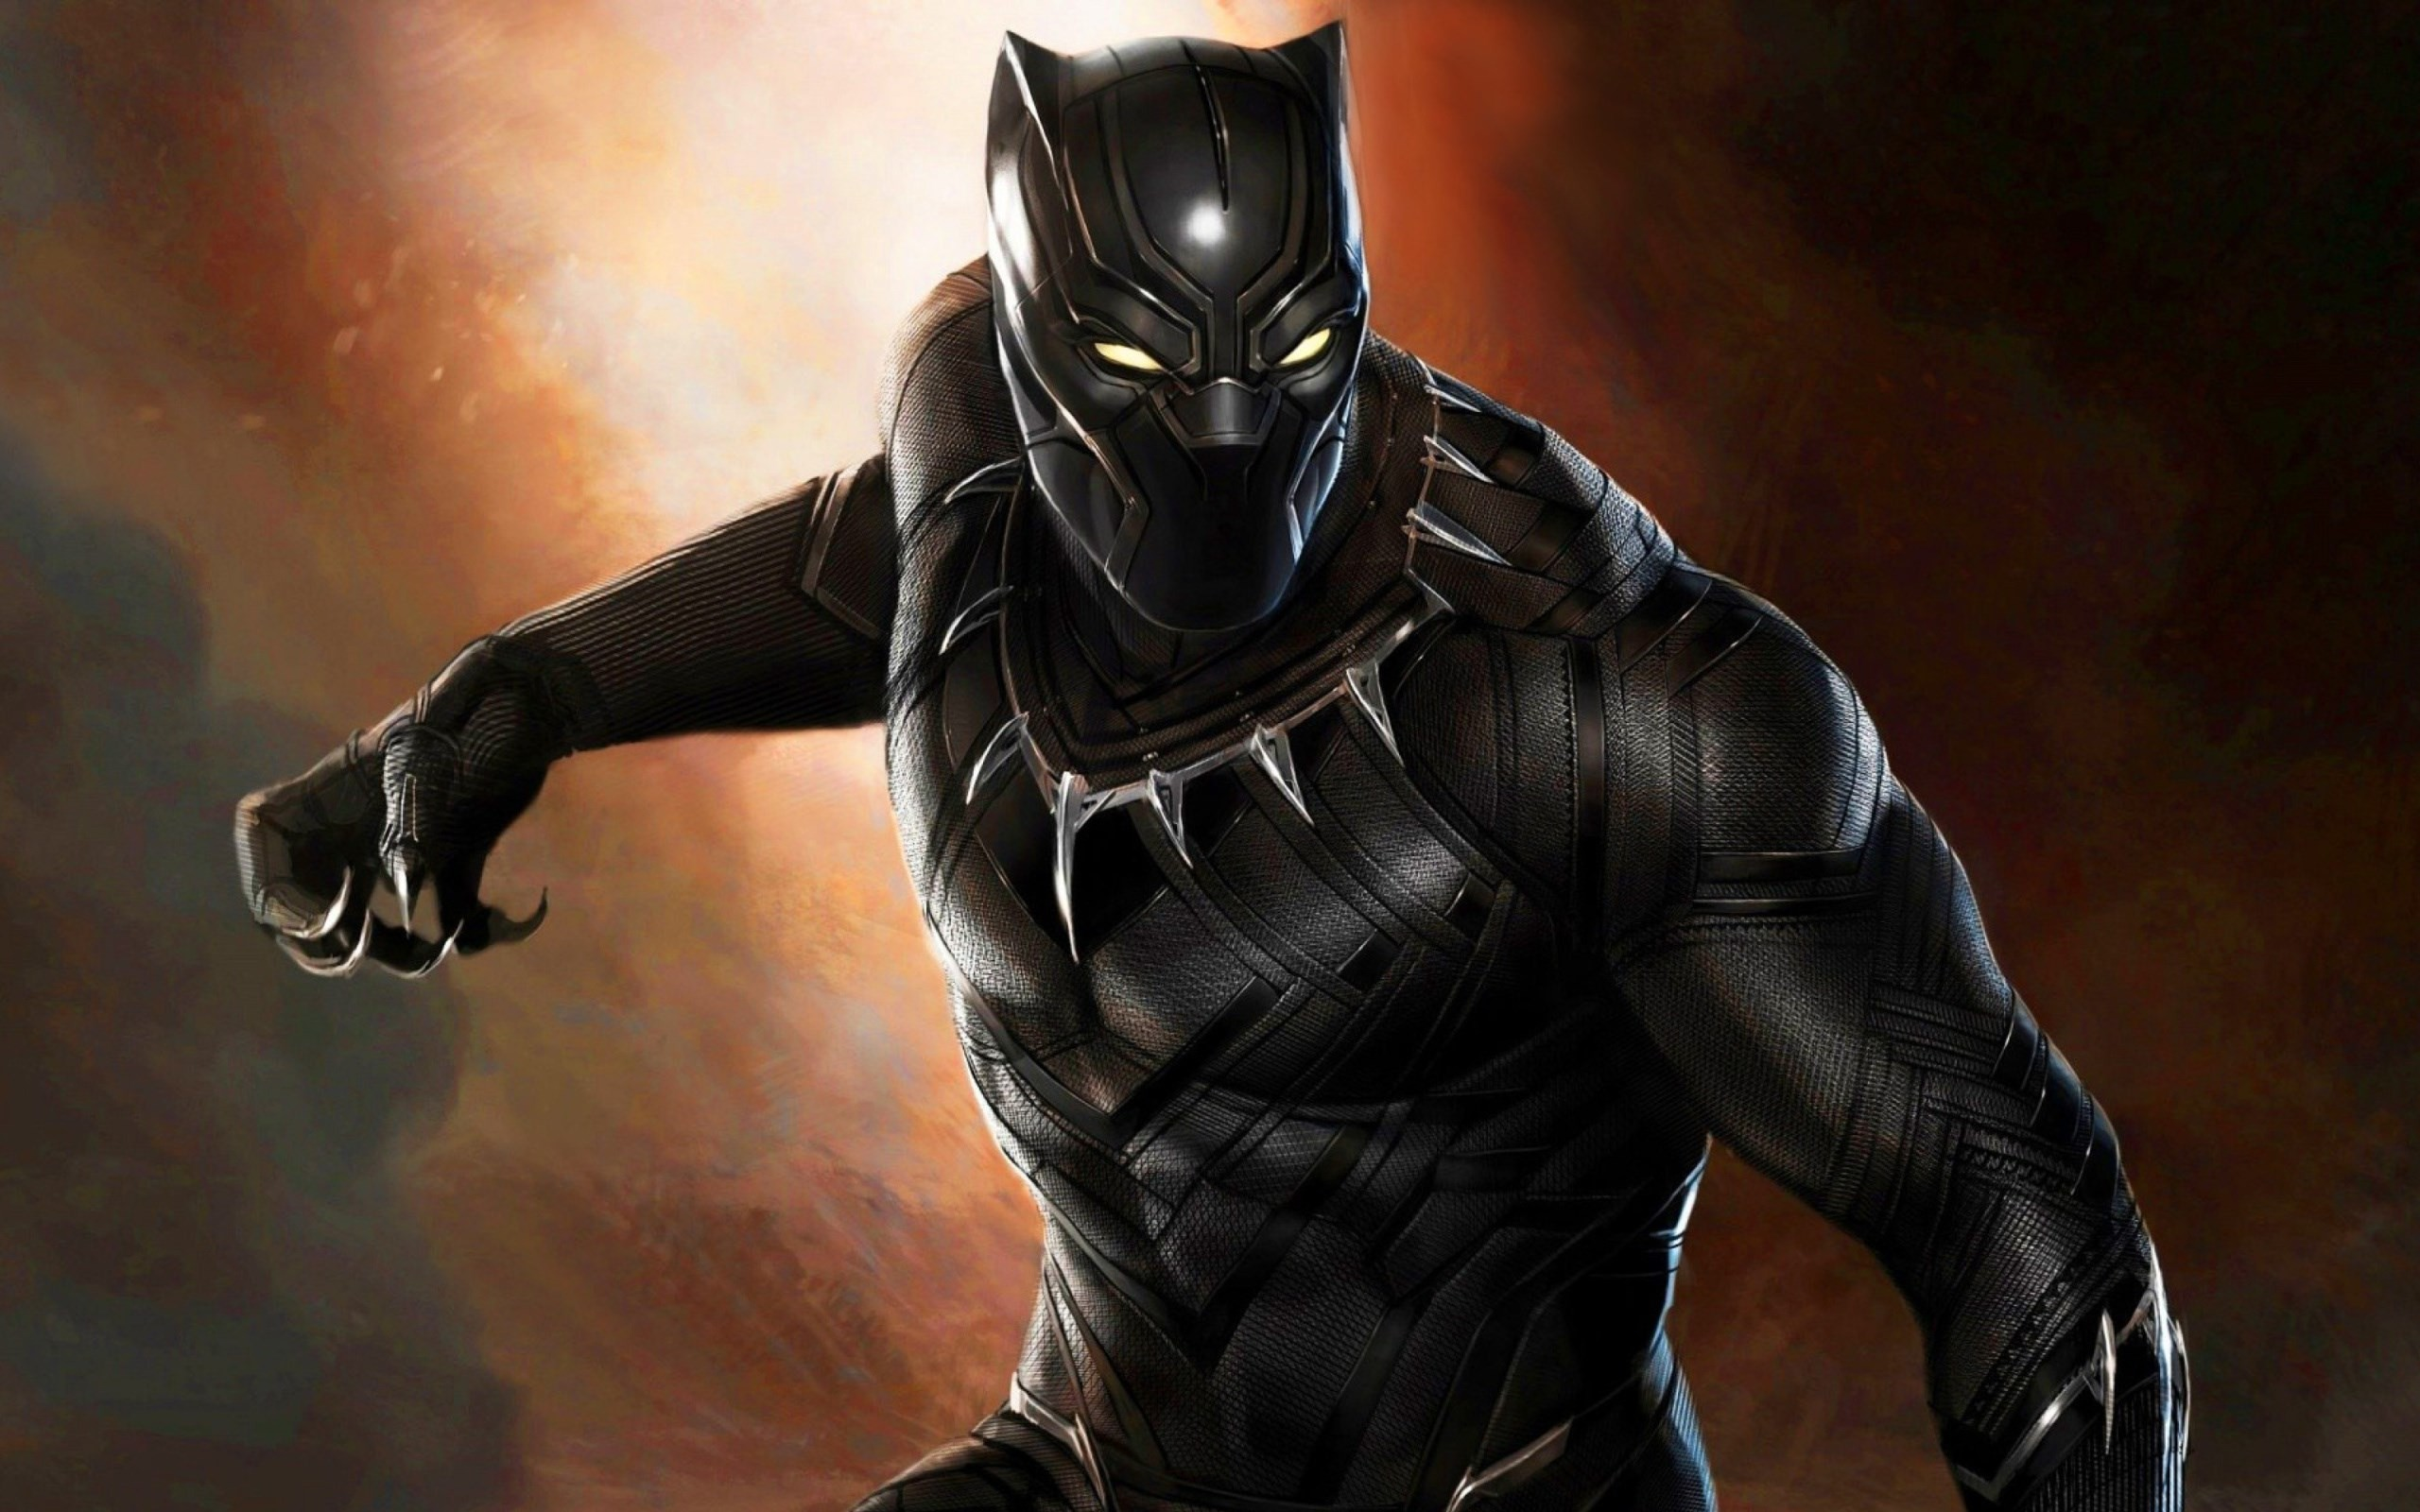 black panther super hero High Definition Wallpapers